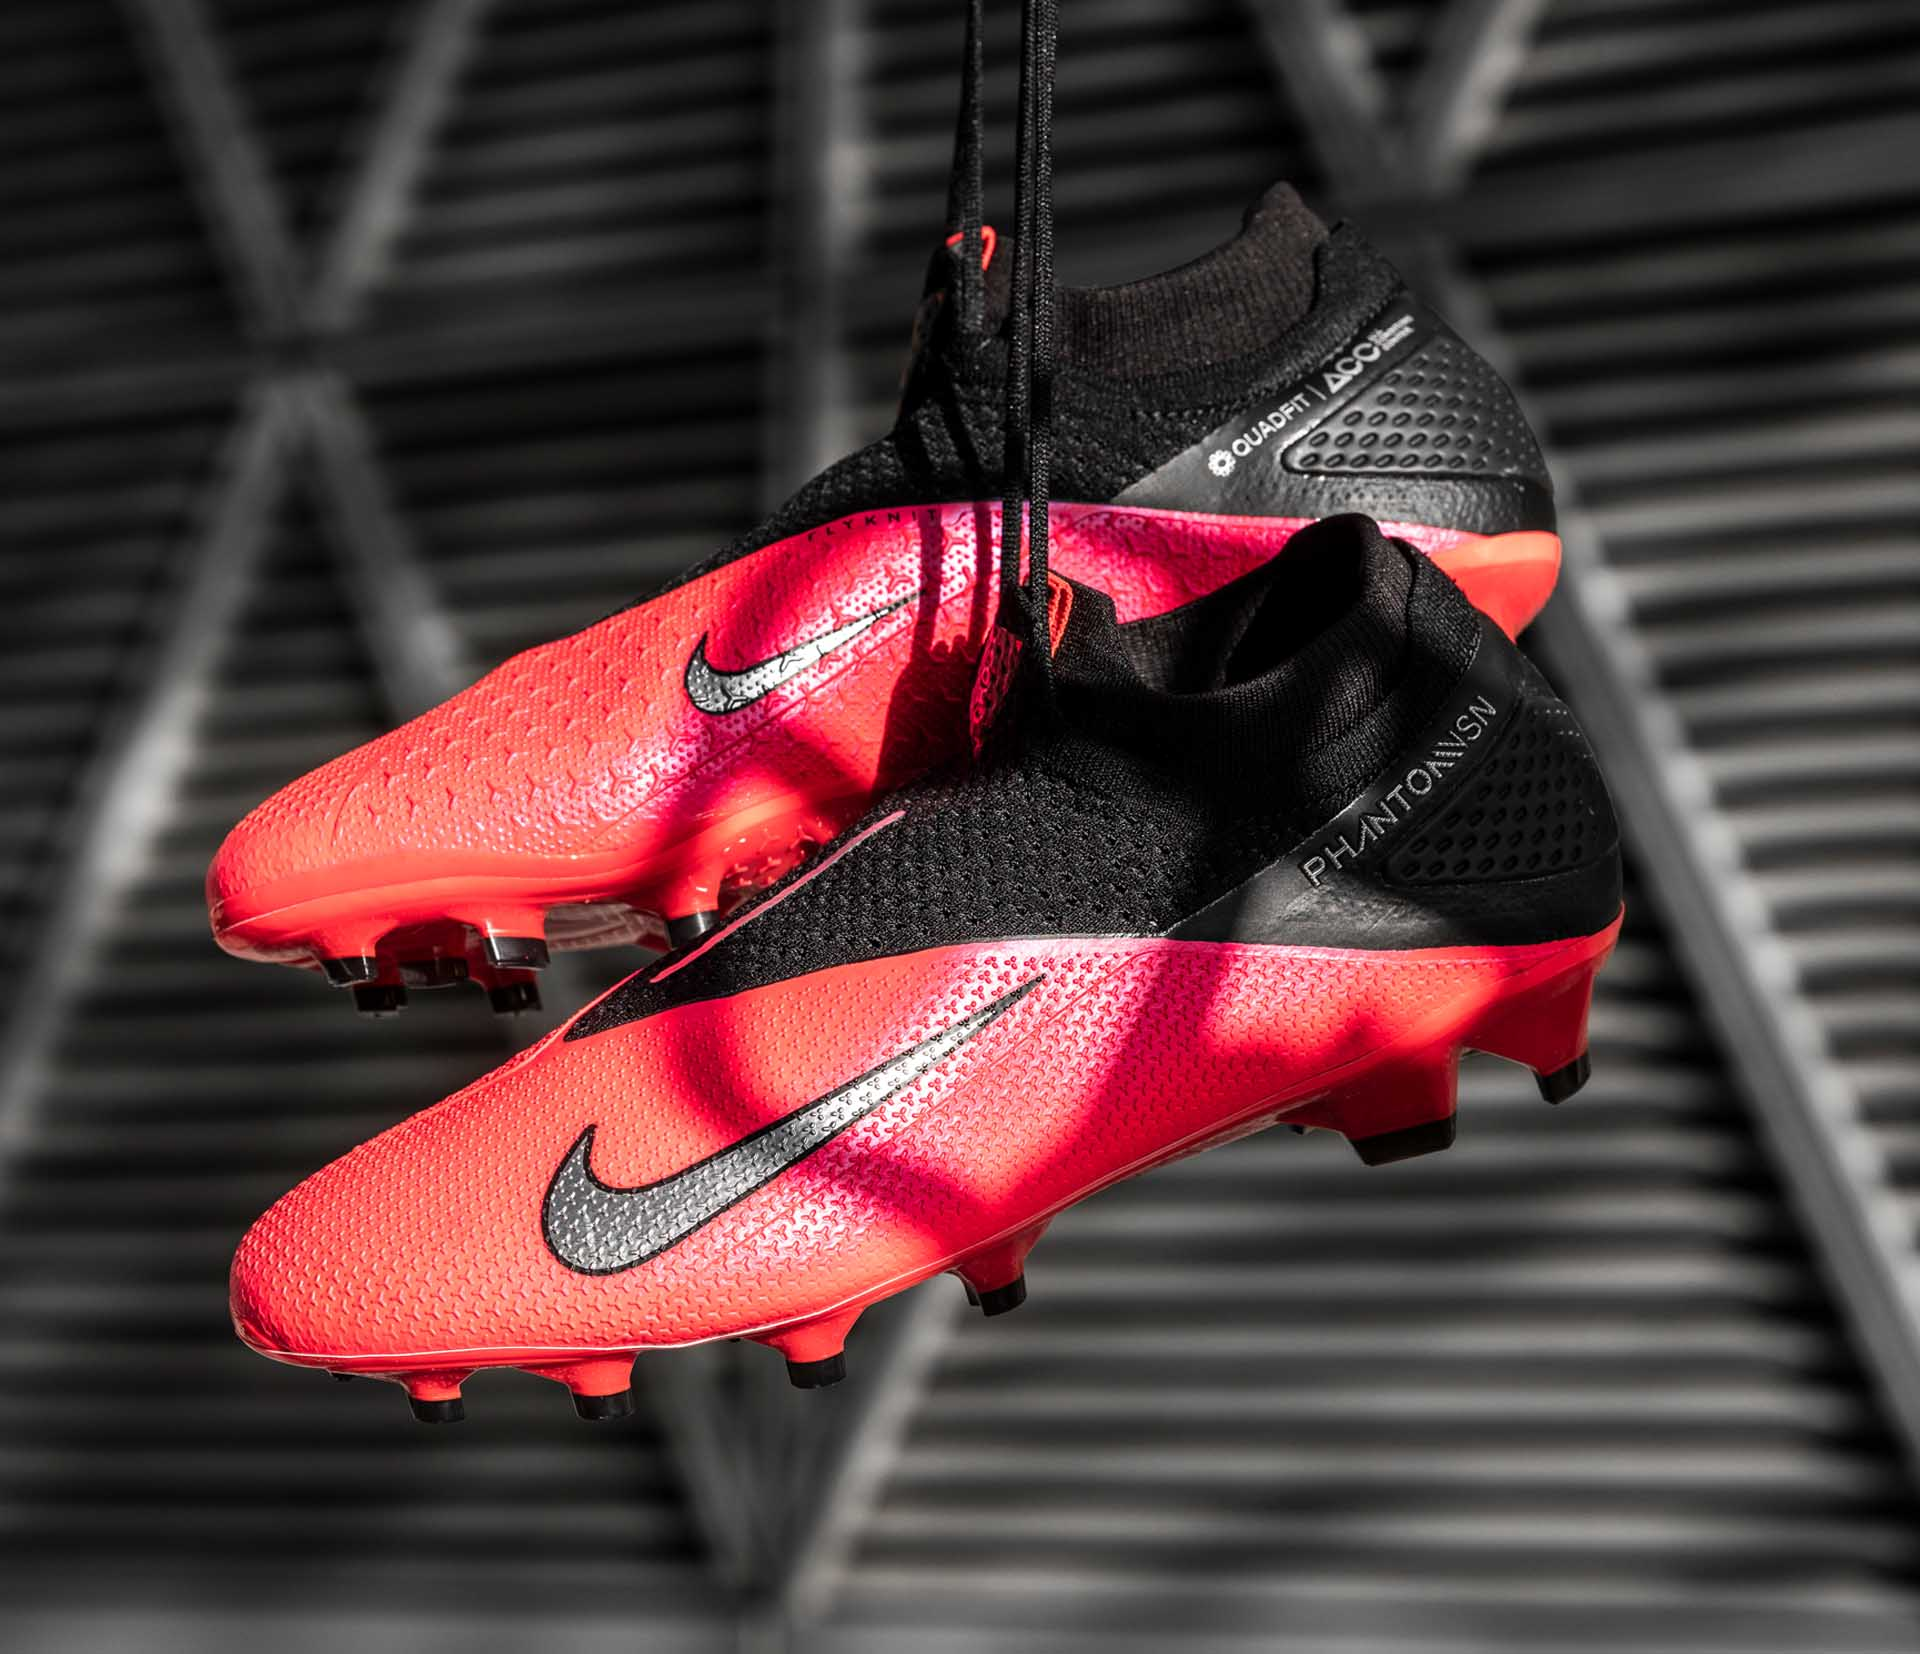 b-nike-phantom-vsn-ii-future-lab-min.jpg